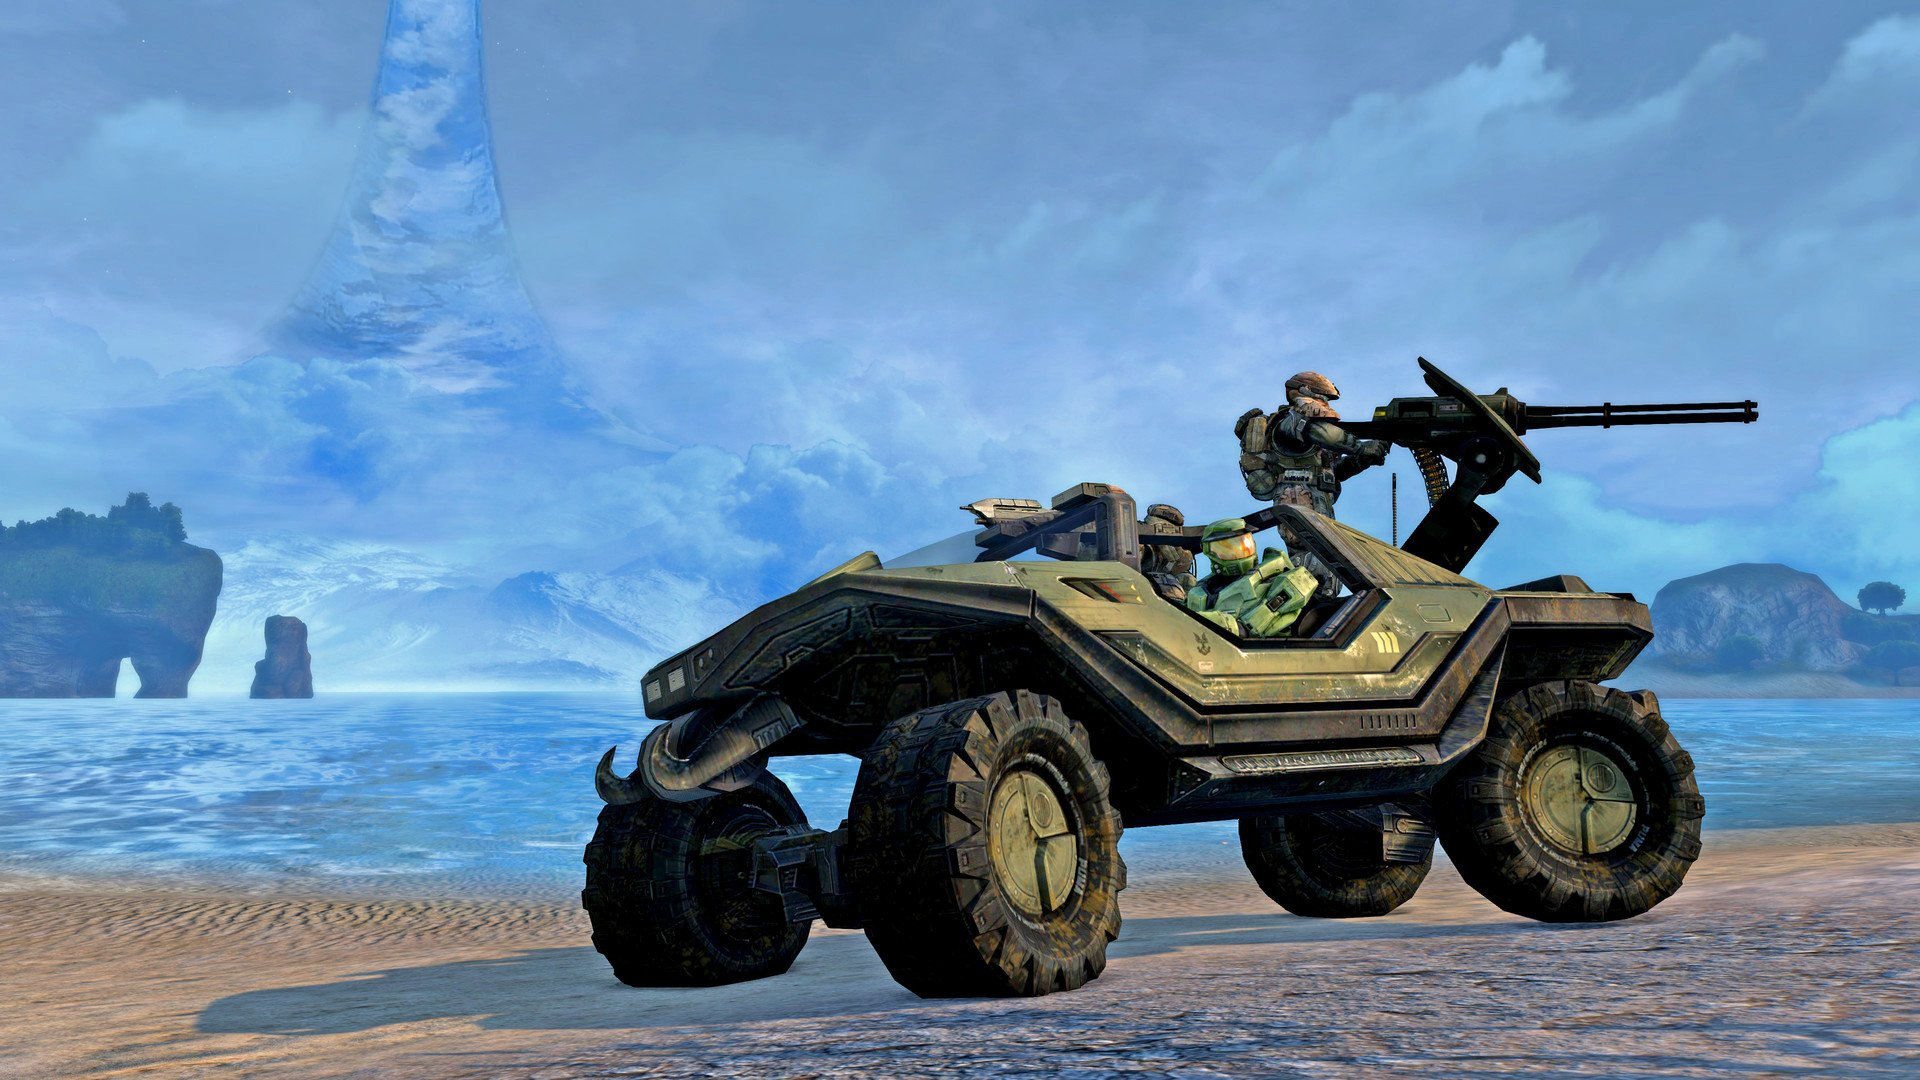 Halo: CE Anniversary PC MCC controls and keybindings | Shacknews